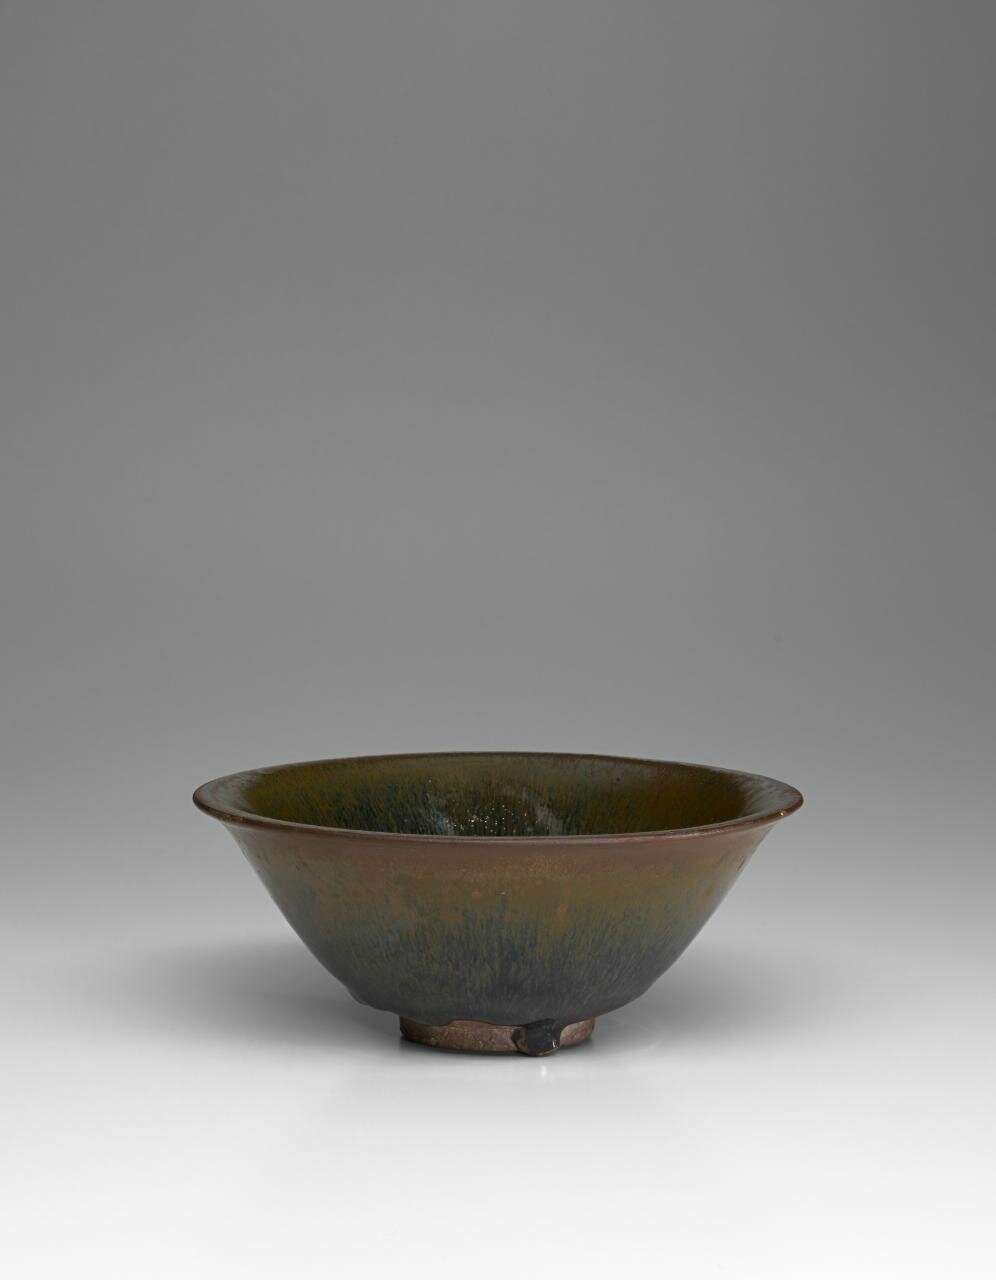 Tea bowl, Southern Song dynasty, 1127-1279, Jian ware